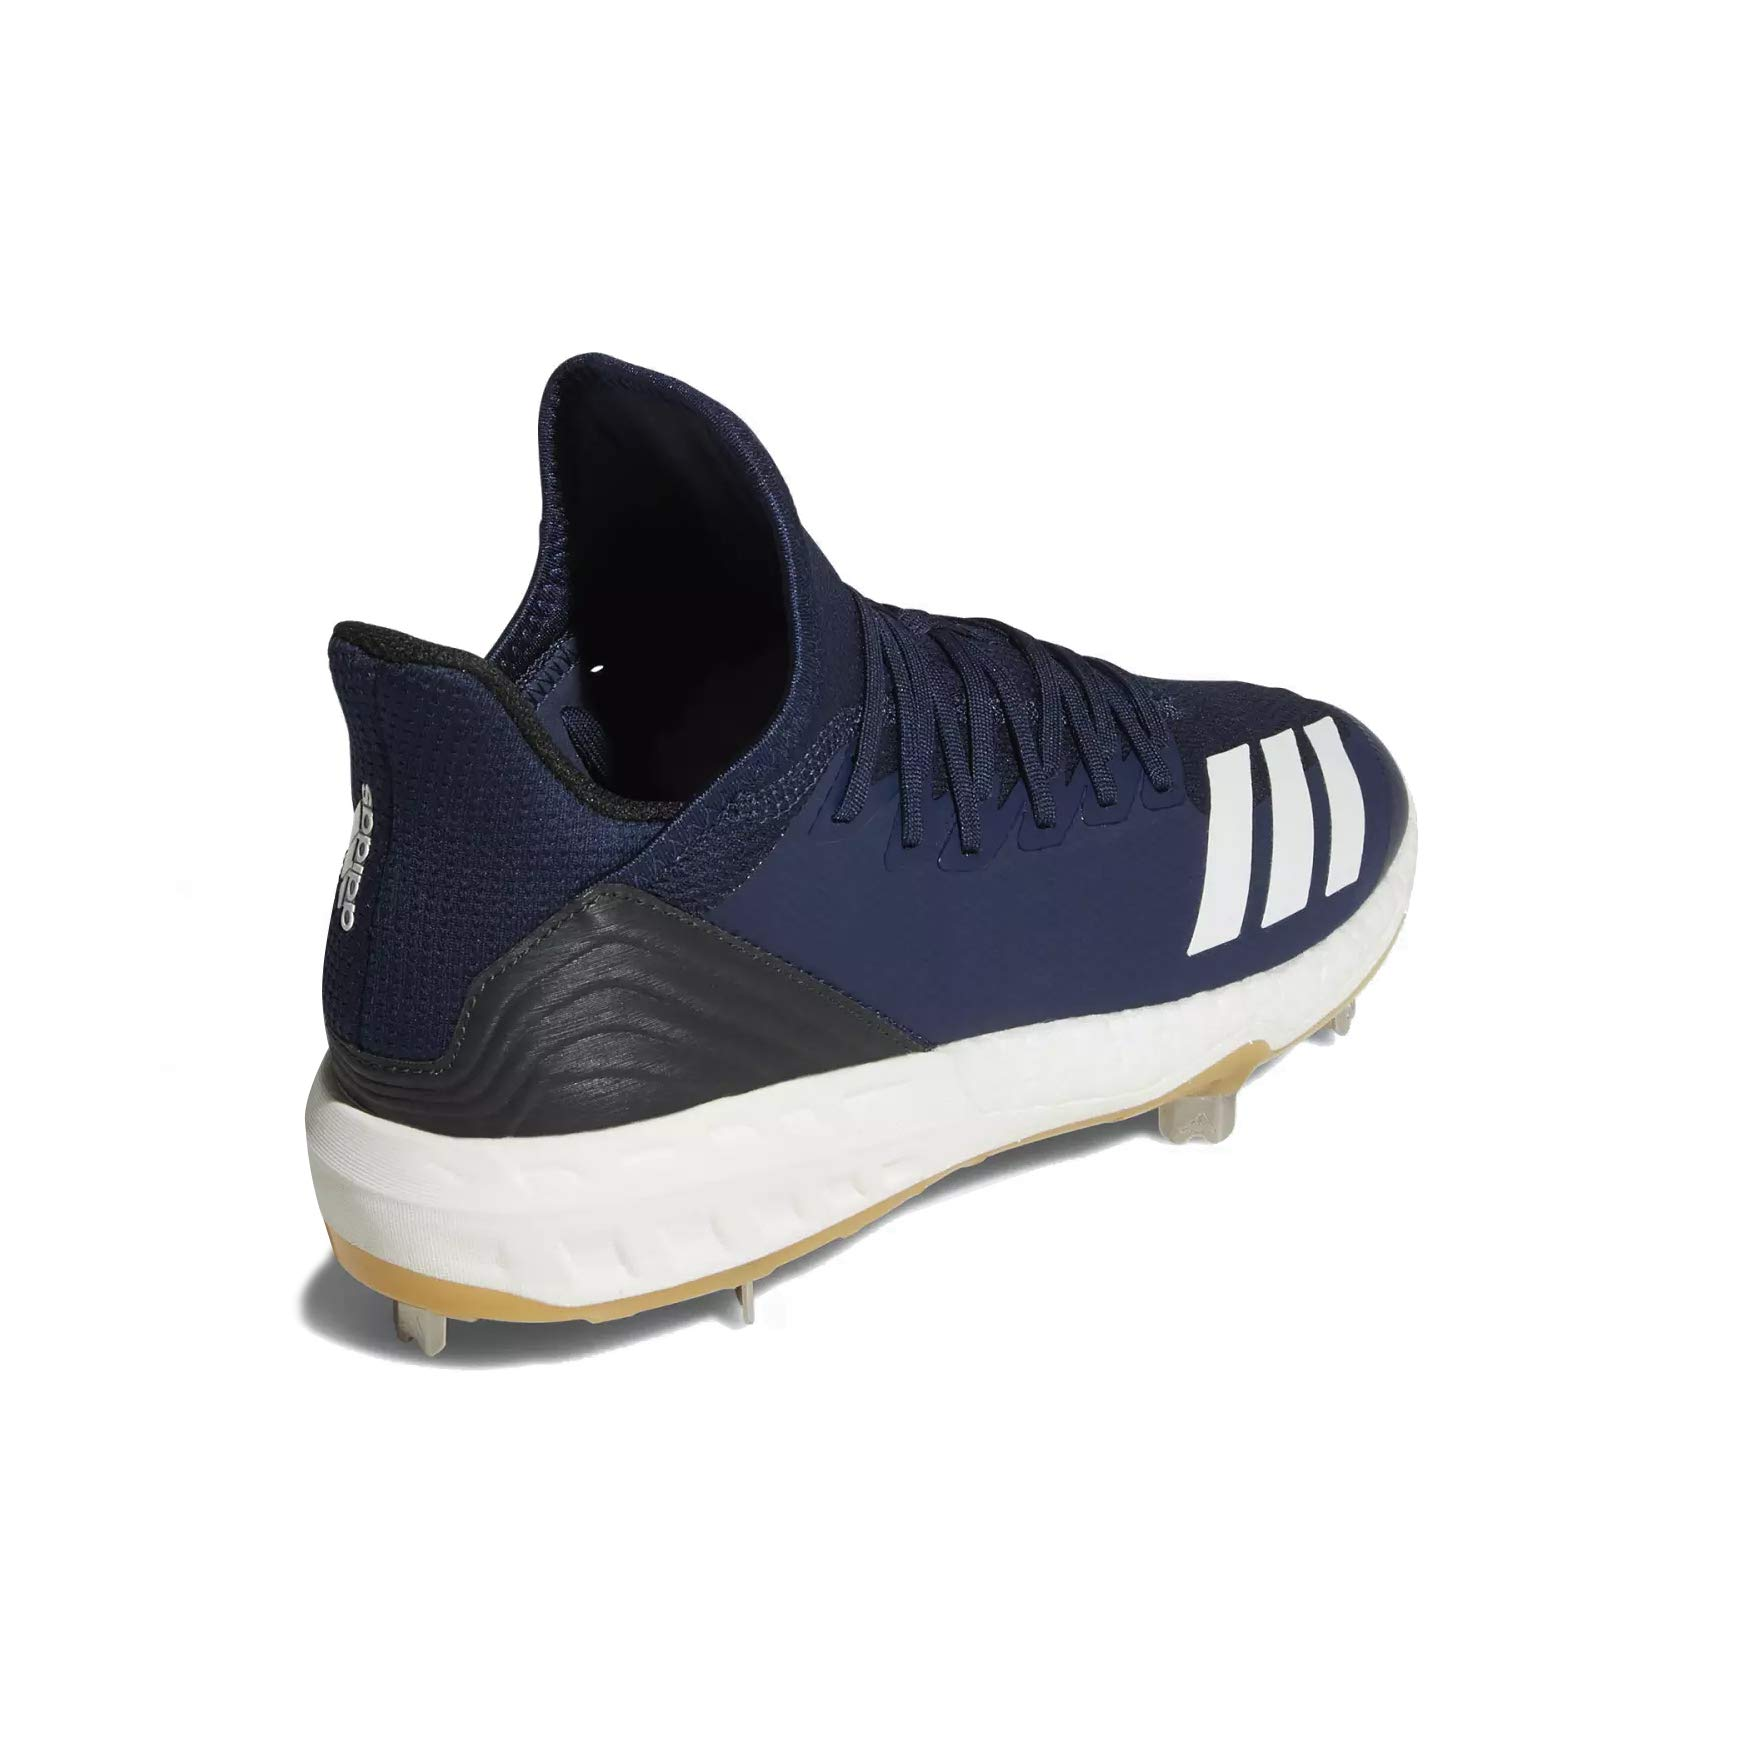 adidas Icon 4 Cleat - Men's Baseball 7 Collegiate Navy/White/Black by adidas (Image #3)